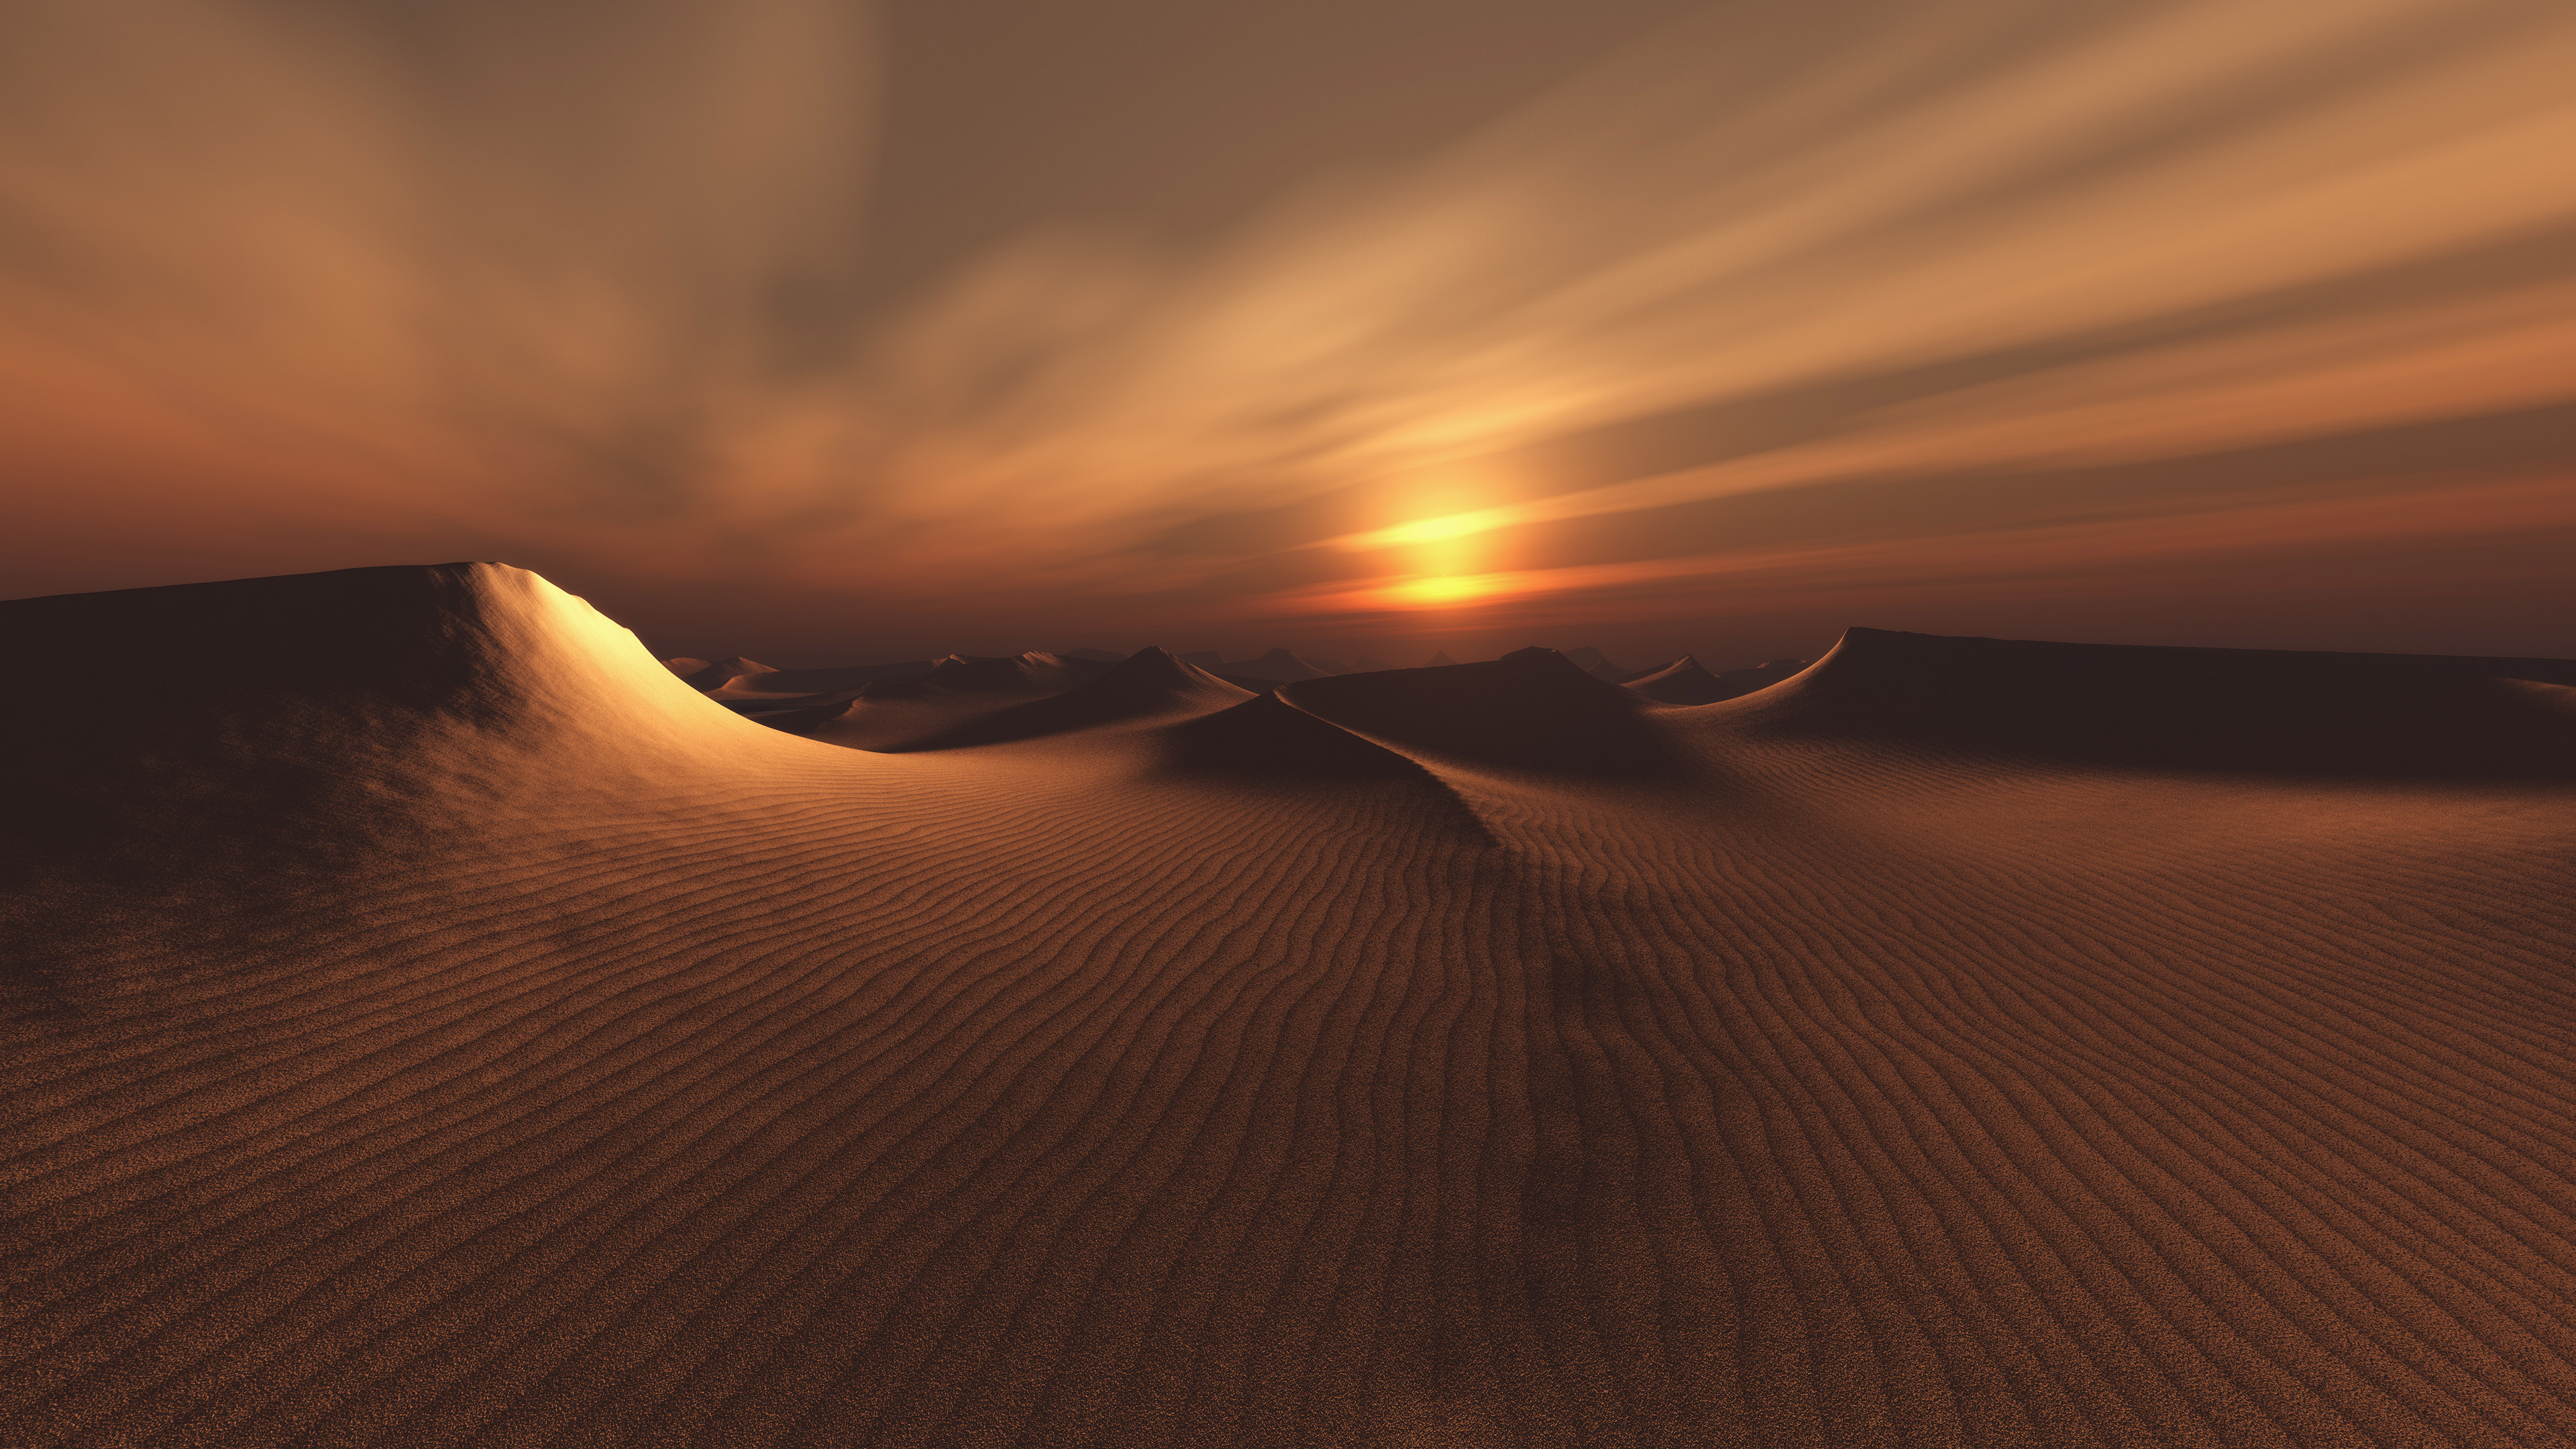 desert dark hd nature 4k wallpapers images backgrounds